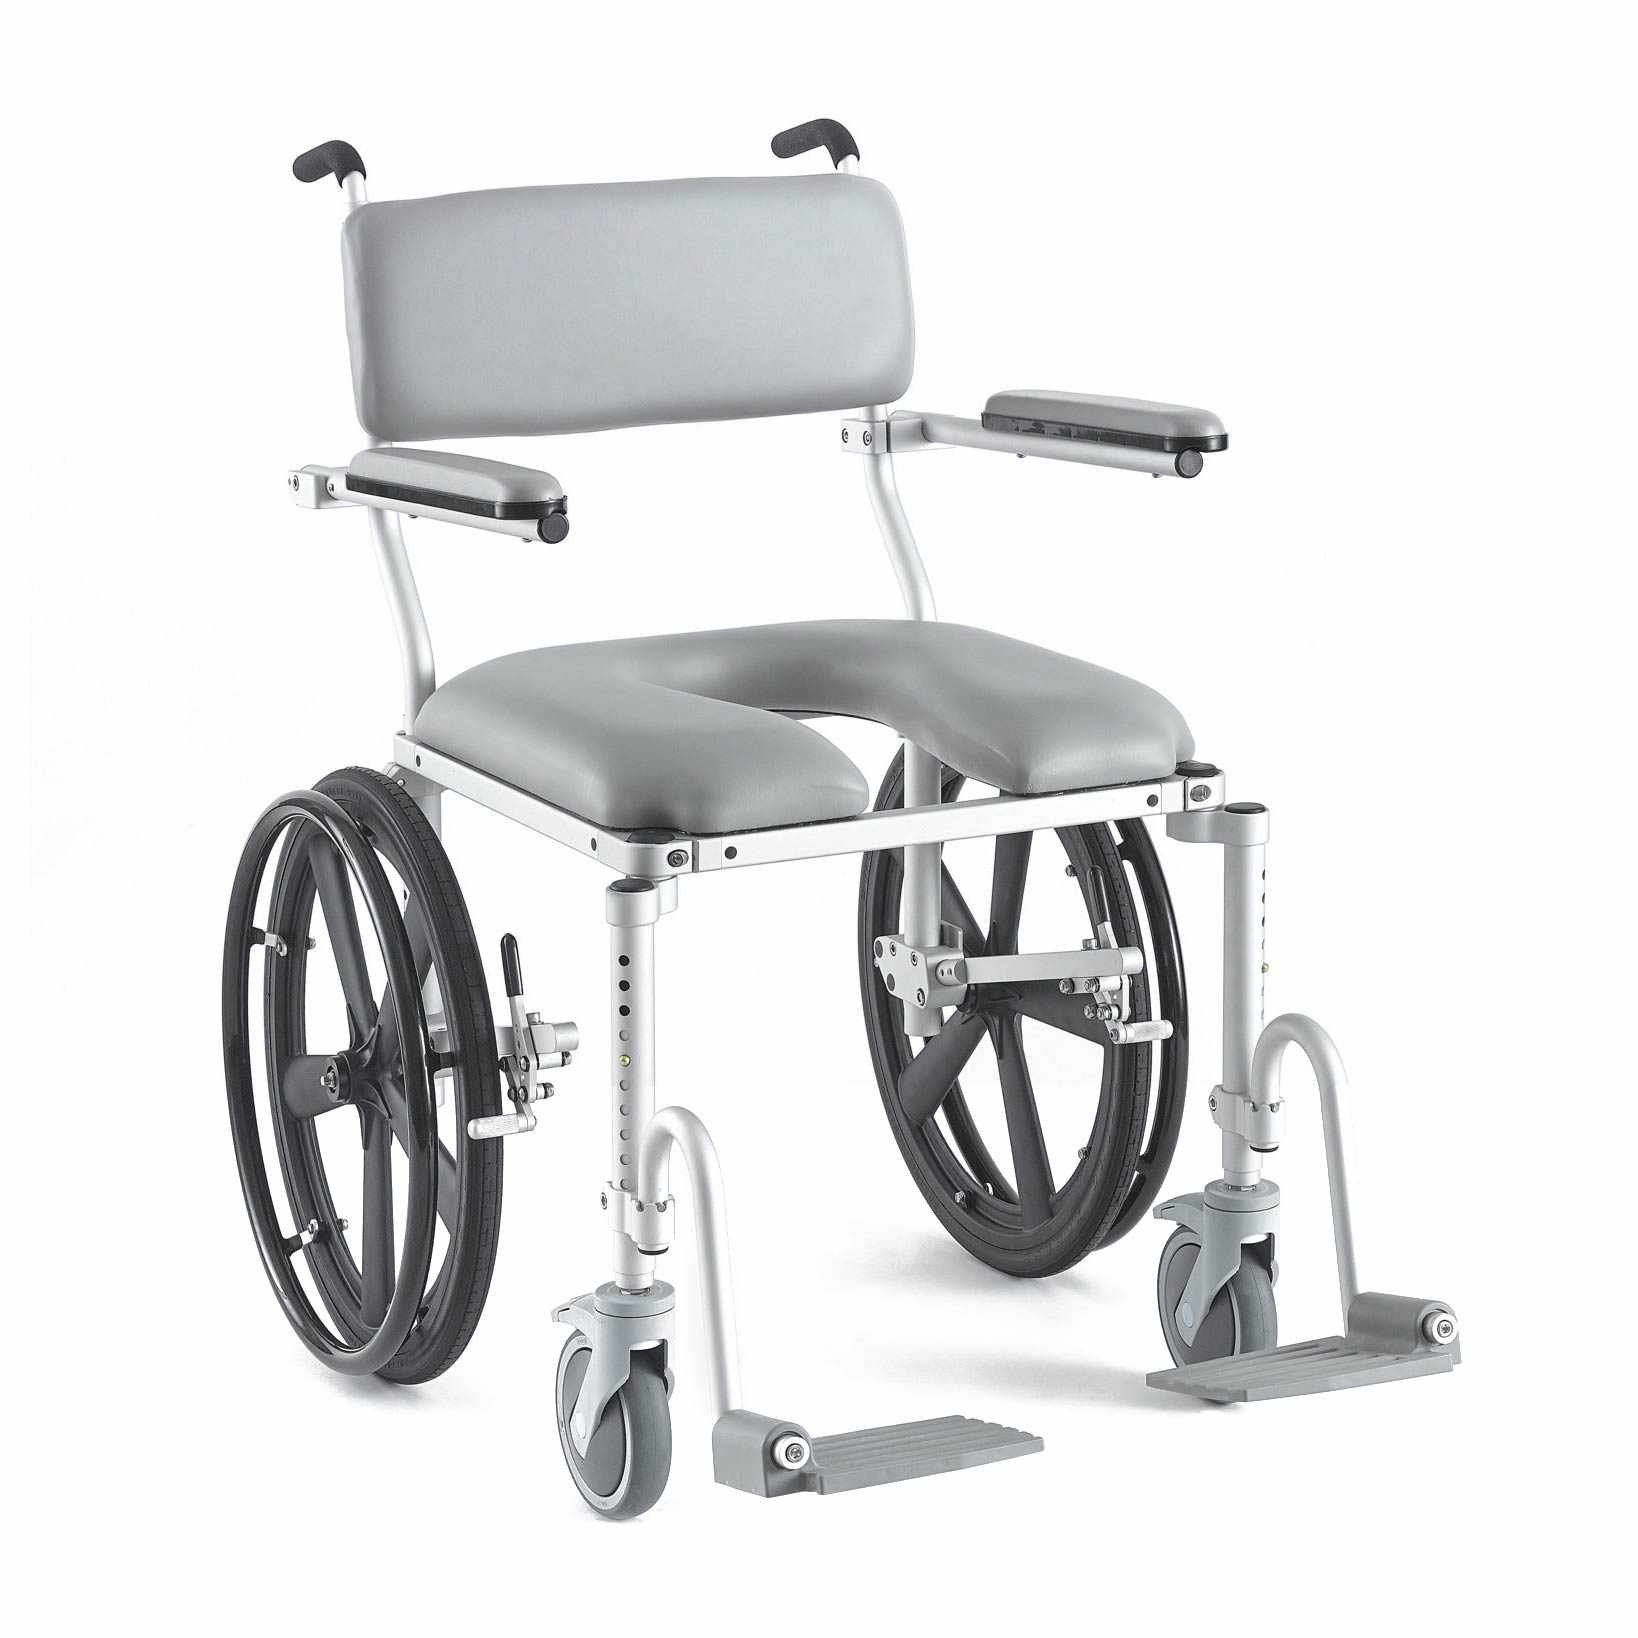 Nuprodx 4220 Roll-In-Shower Commode Chair | Medicaleshop